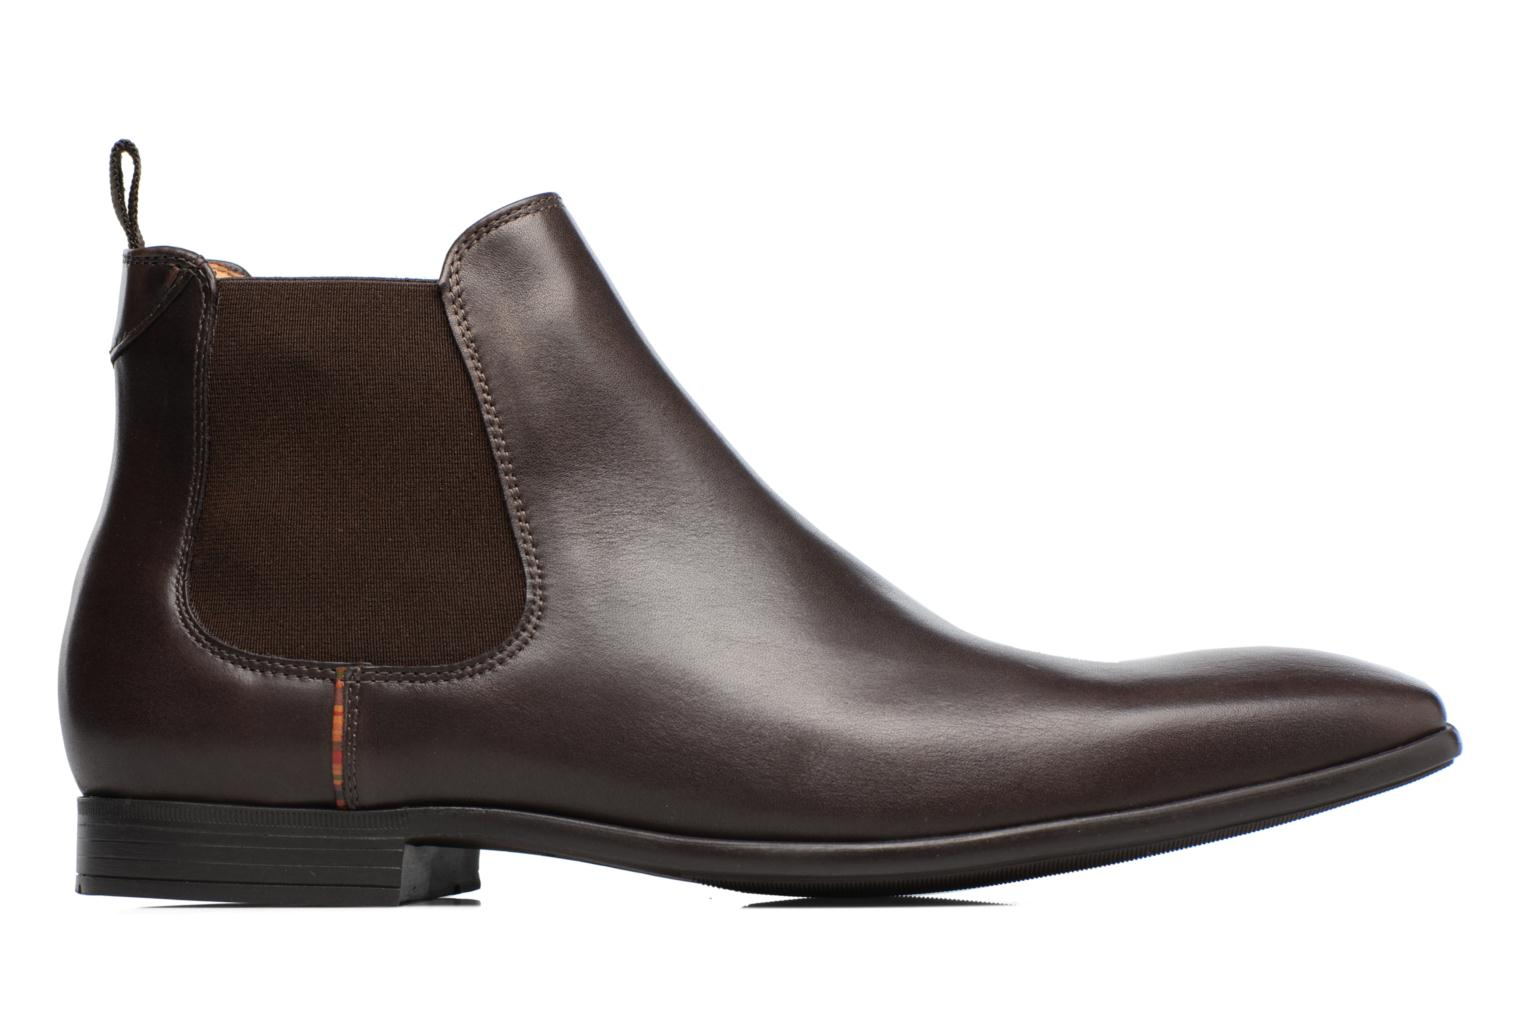 Bottines et boots Paul Smith Falconer Marron vue derrière